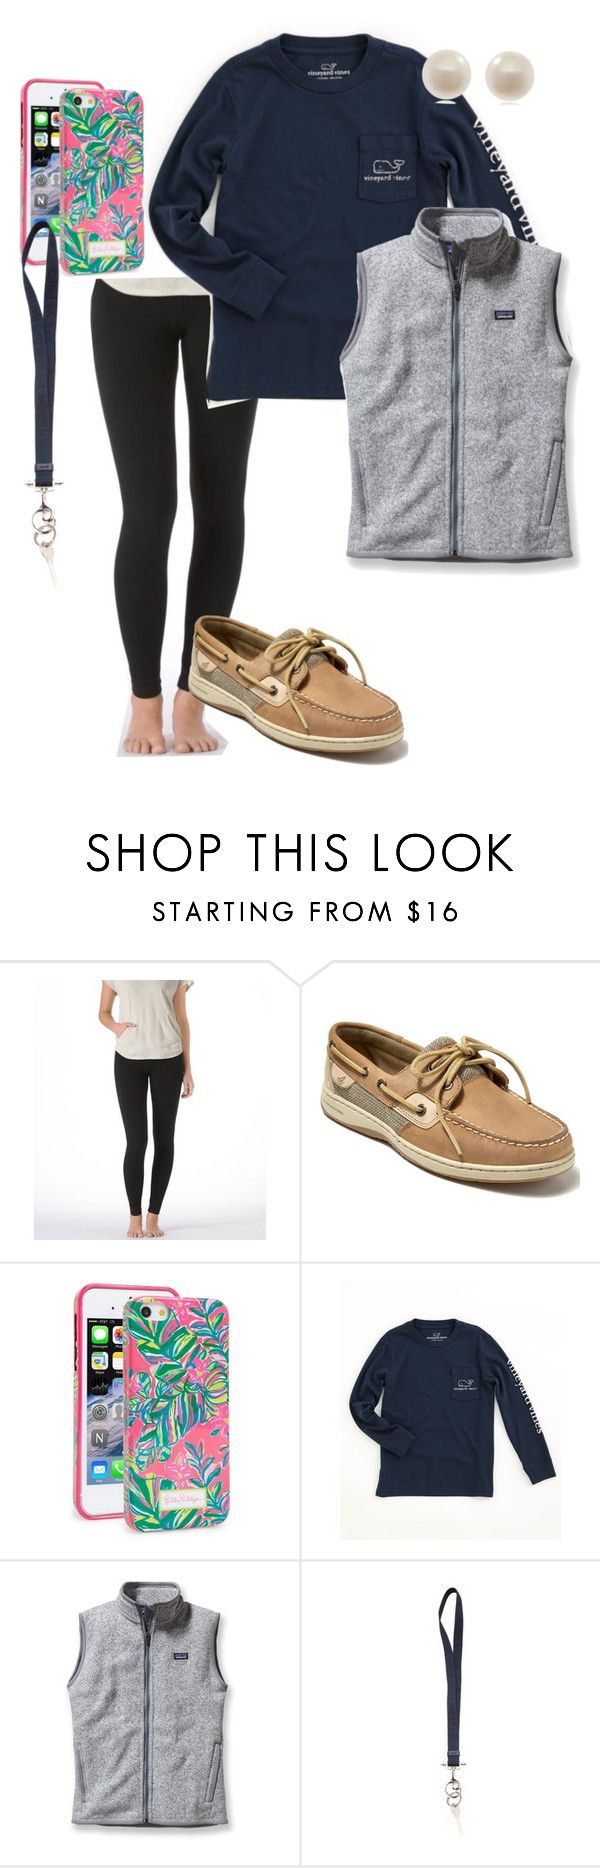 """""""extra preppy"""" by pmargaret ❤ liked on Polyvore featuring Aerie, Sperry, Lilly Pulitzer, Vineyard Vines, Patagonia, Givenchy and Links of London"""